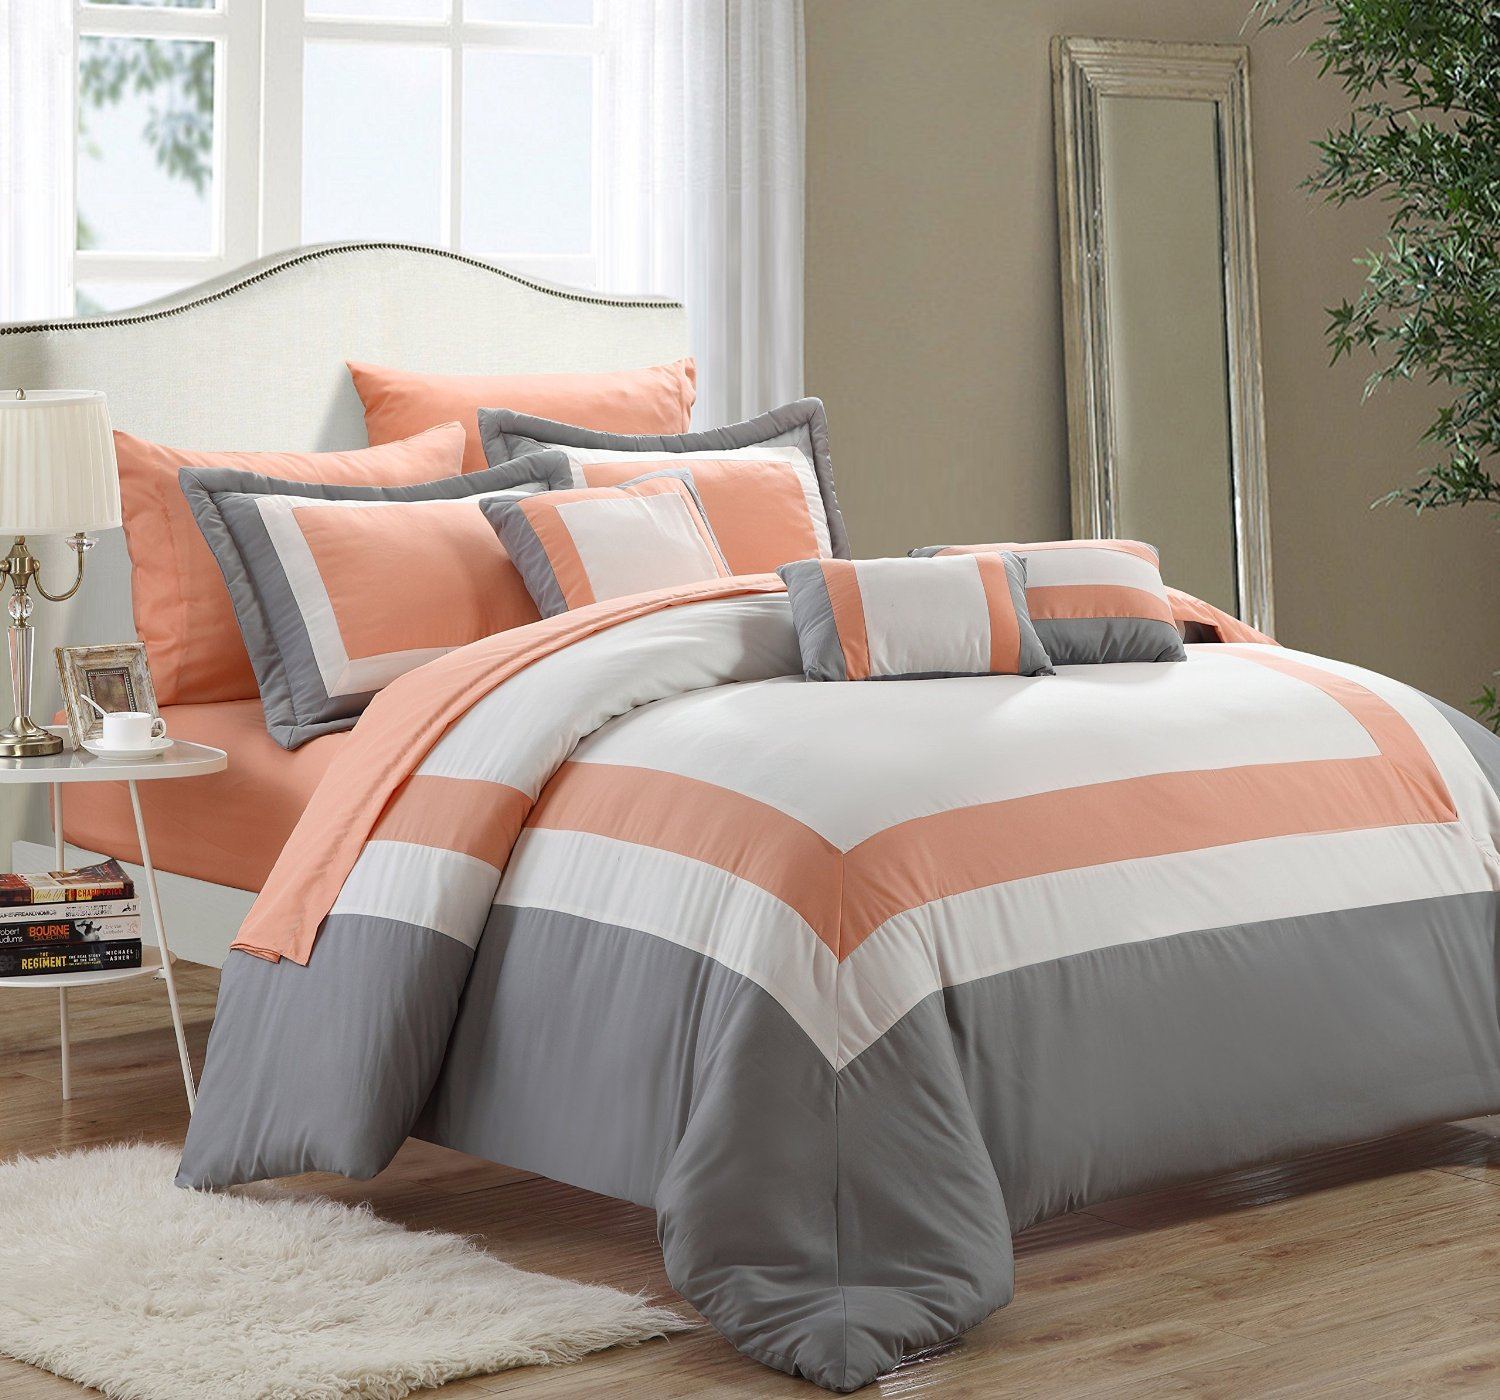 collection comforter set claudia piece is bedroom elegantlinensanddecor comforters from product bedding the gray com sets this